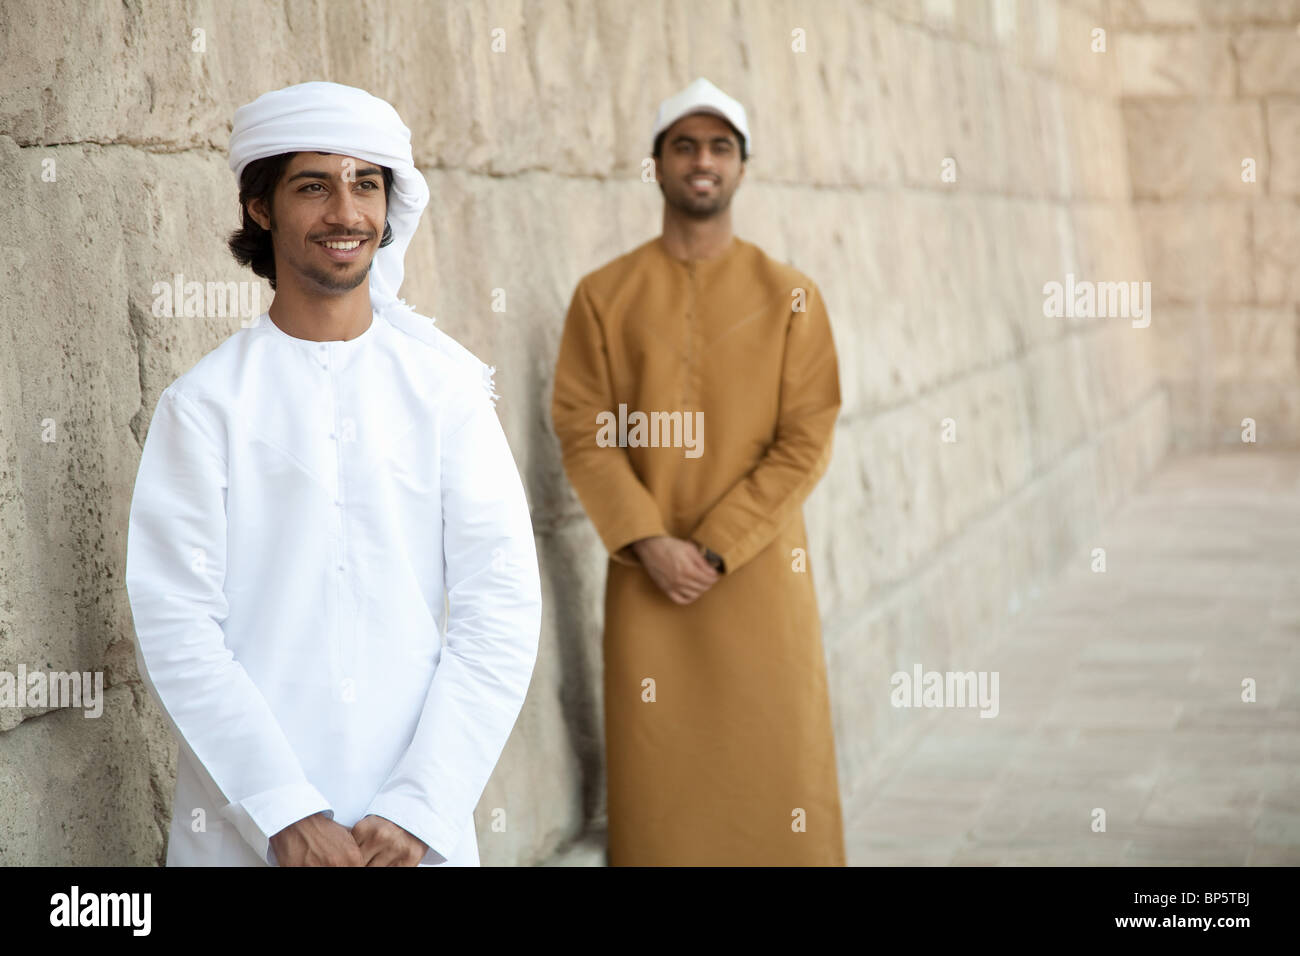 Middle Eastern men looking at by stone wall - Stock Image